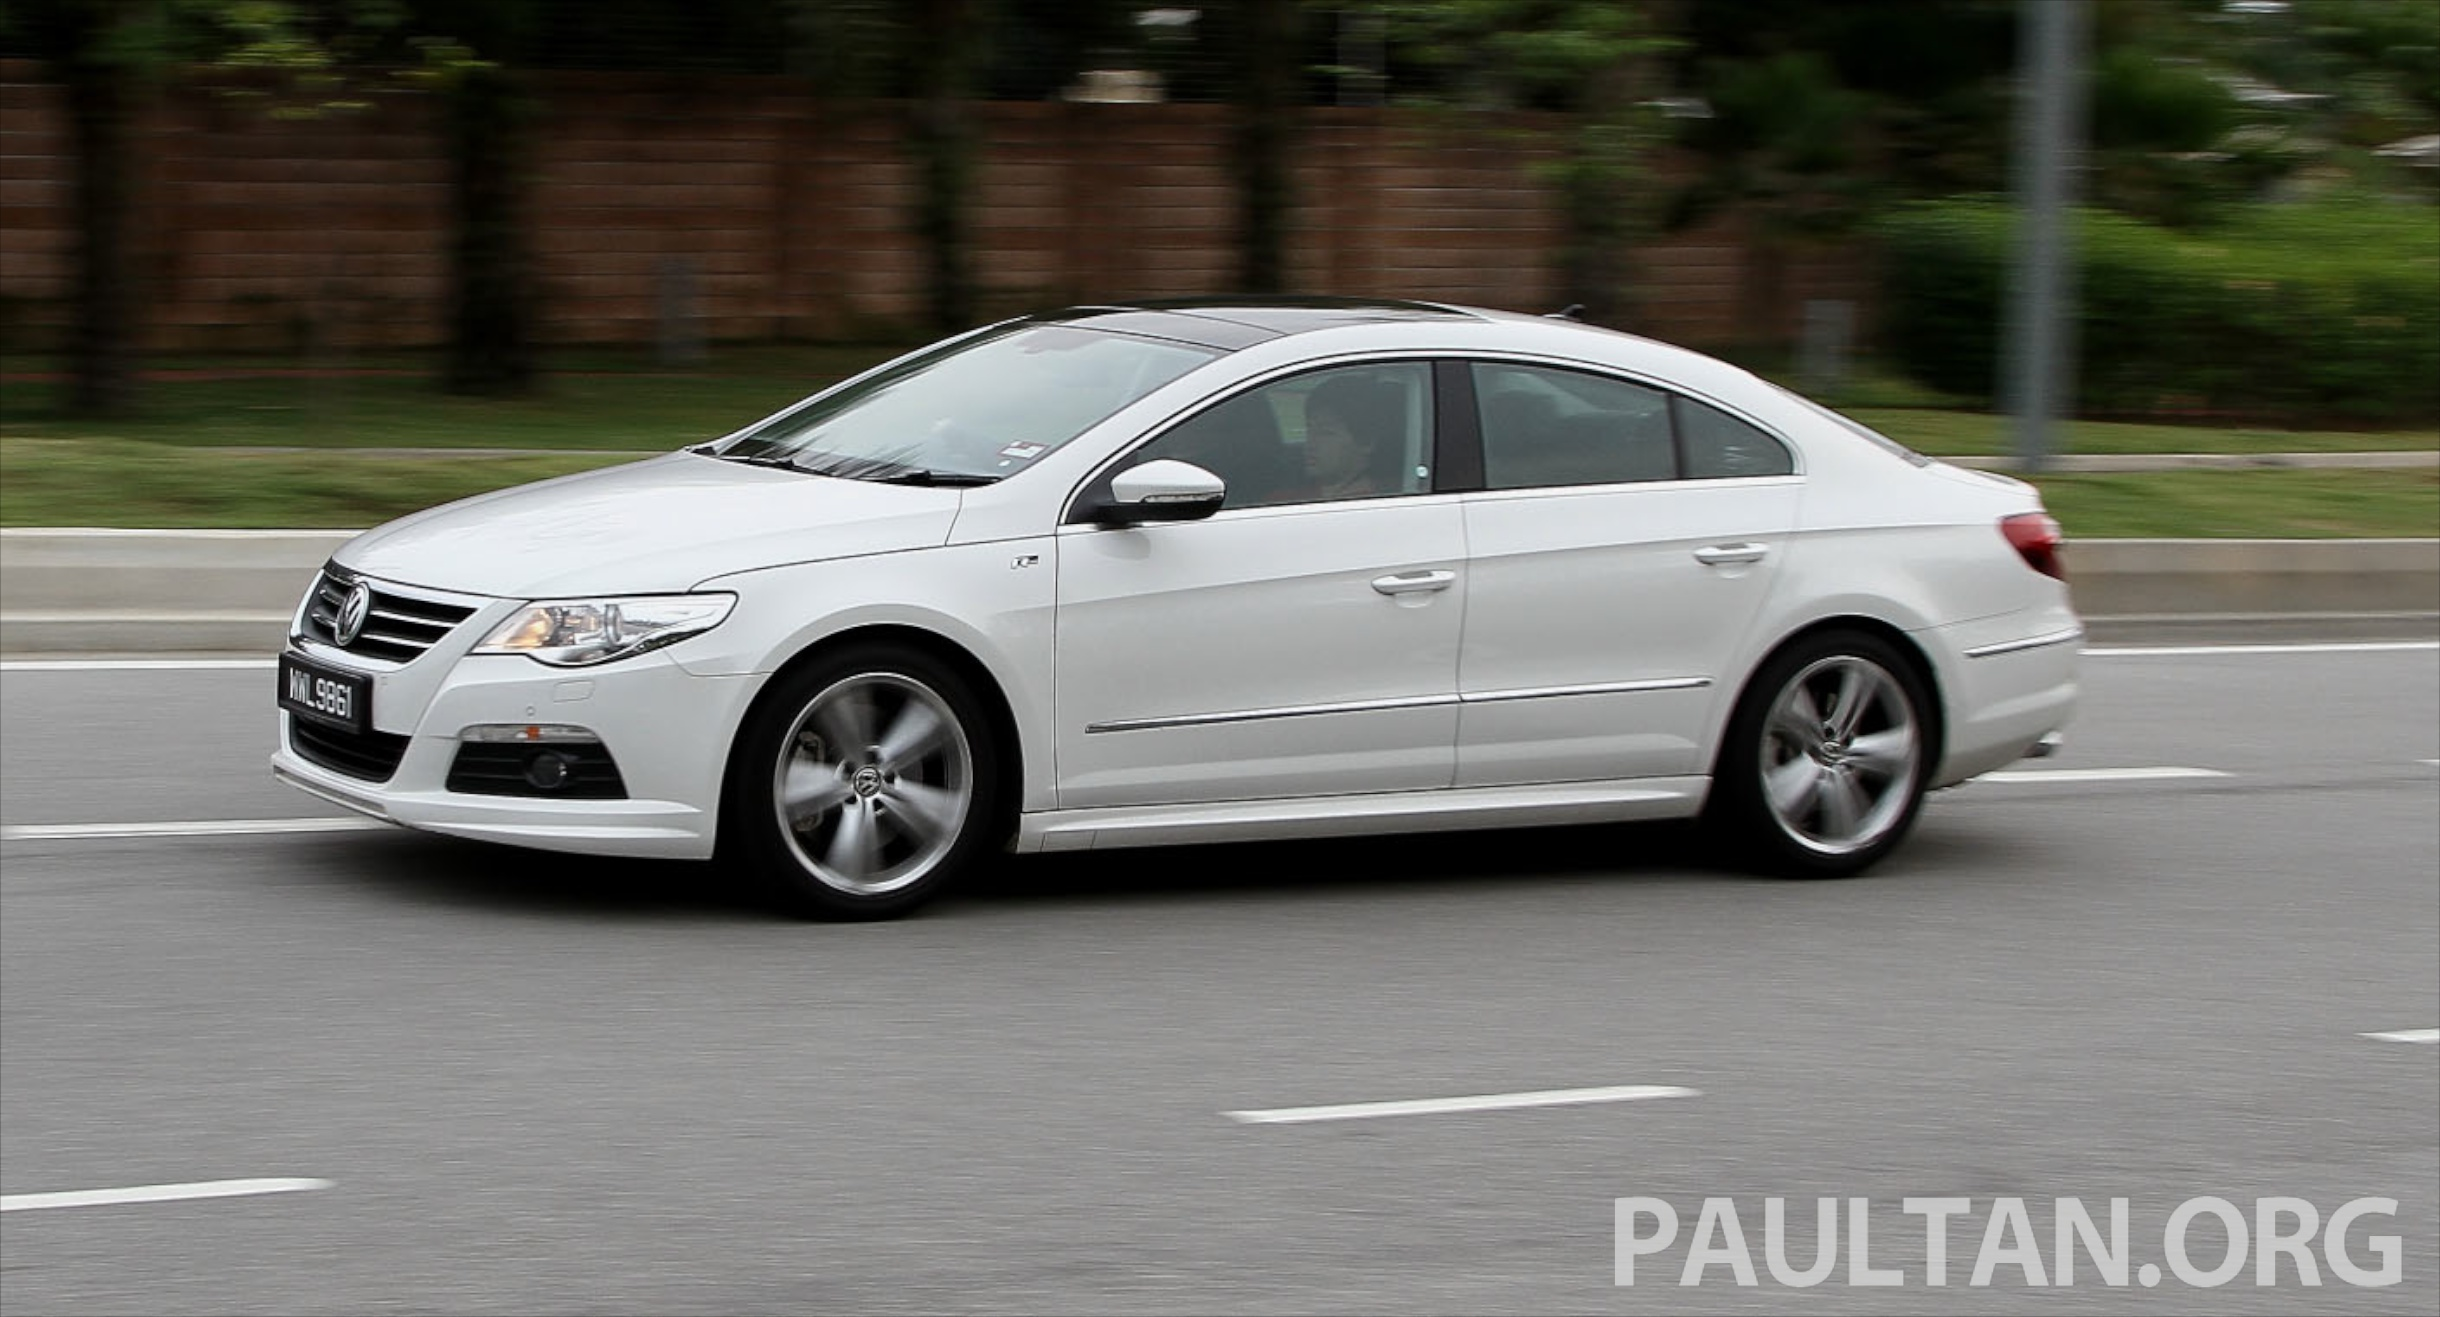 Volkswagen Passat CC 3.6 2012 photo - 6